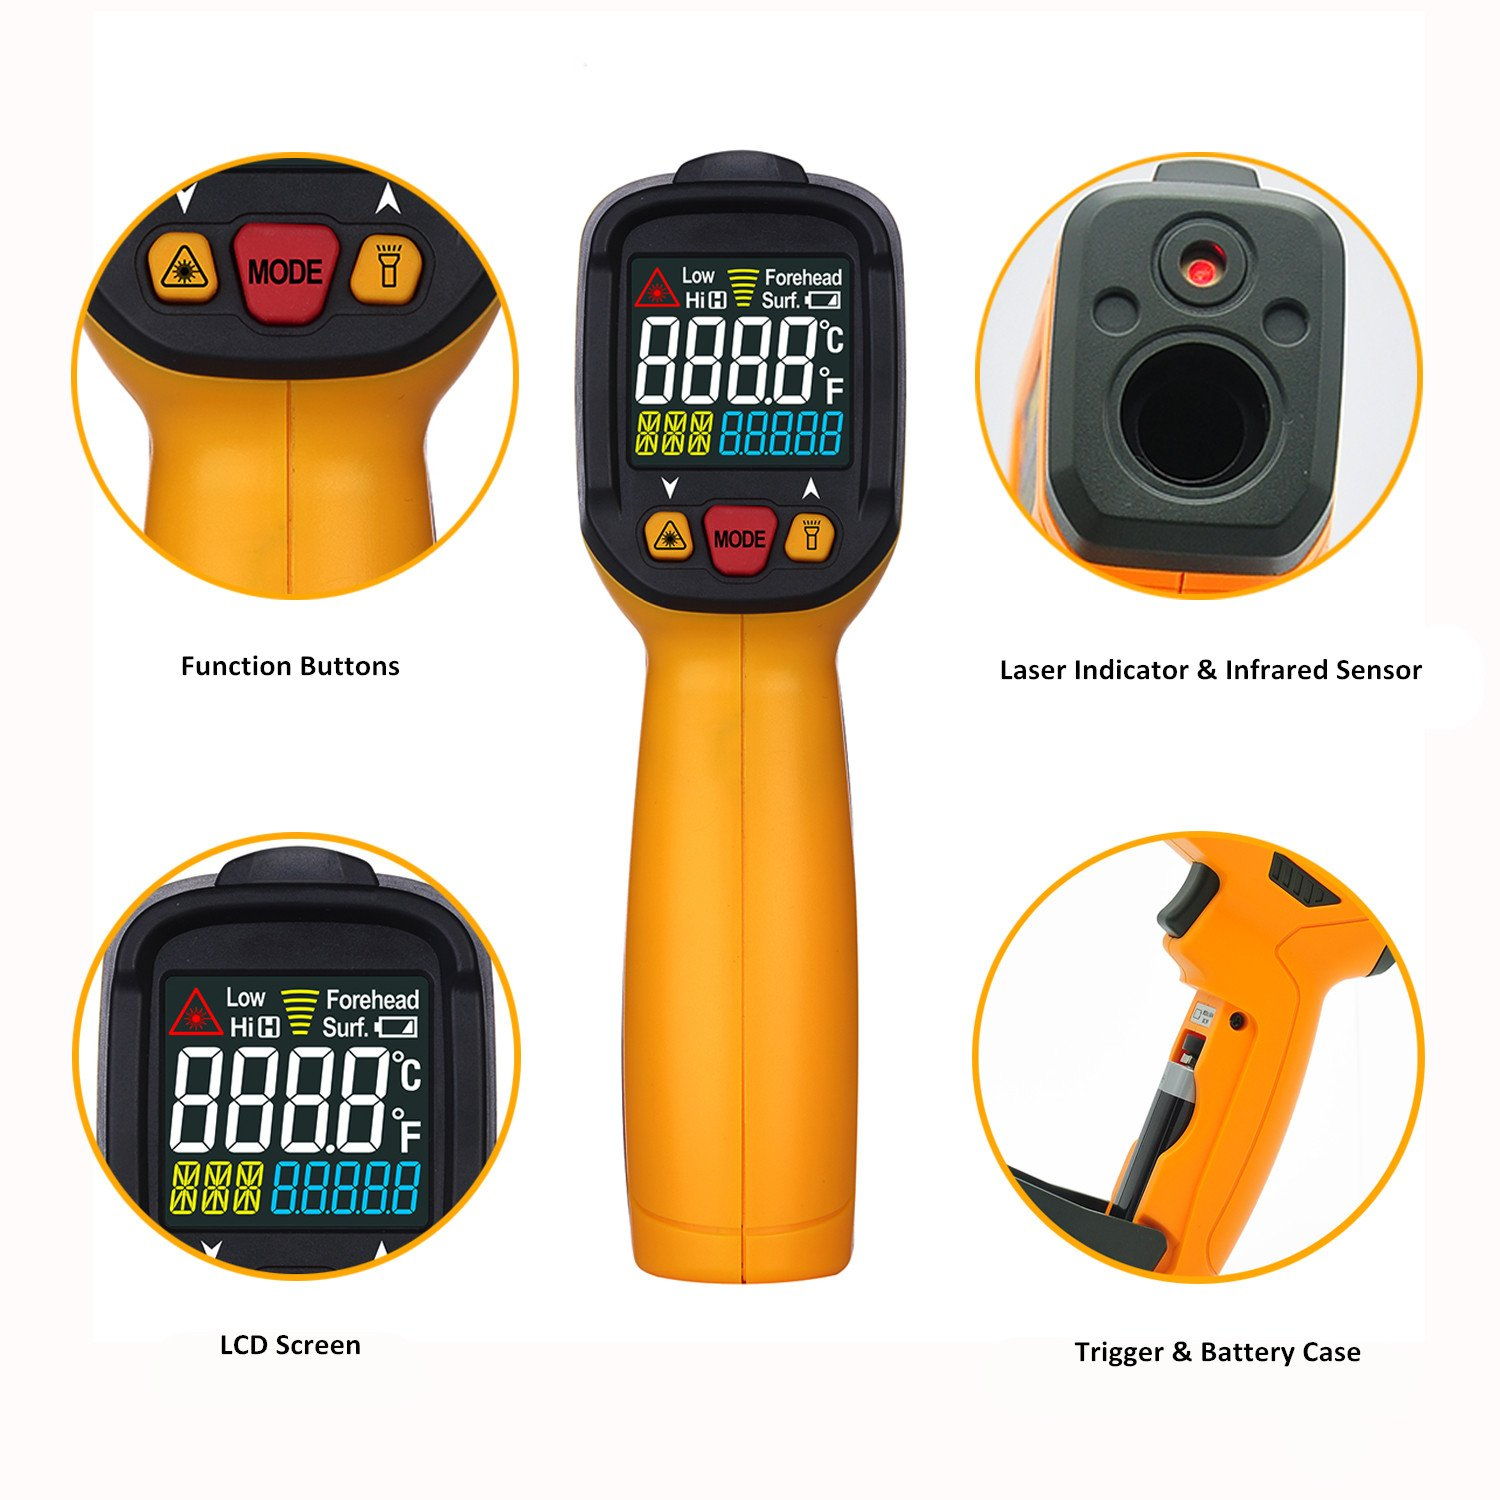 Digital Infrared thermometer Peakmeter PM6530A Laser IR Temperature Gun LCD for Kitchen Cooking Automotive with Temperature Bridge Alarm Function Display -58°F~572°F(-50°C~300°C) by uvcetech (Image #3)